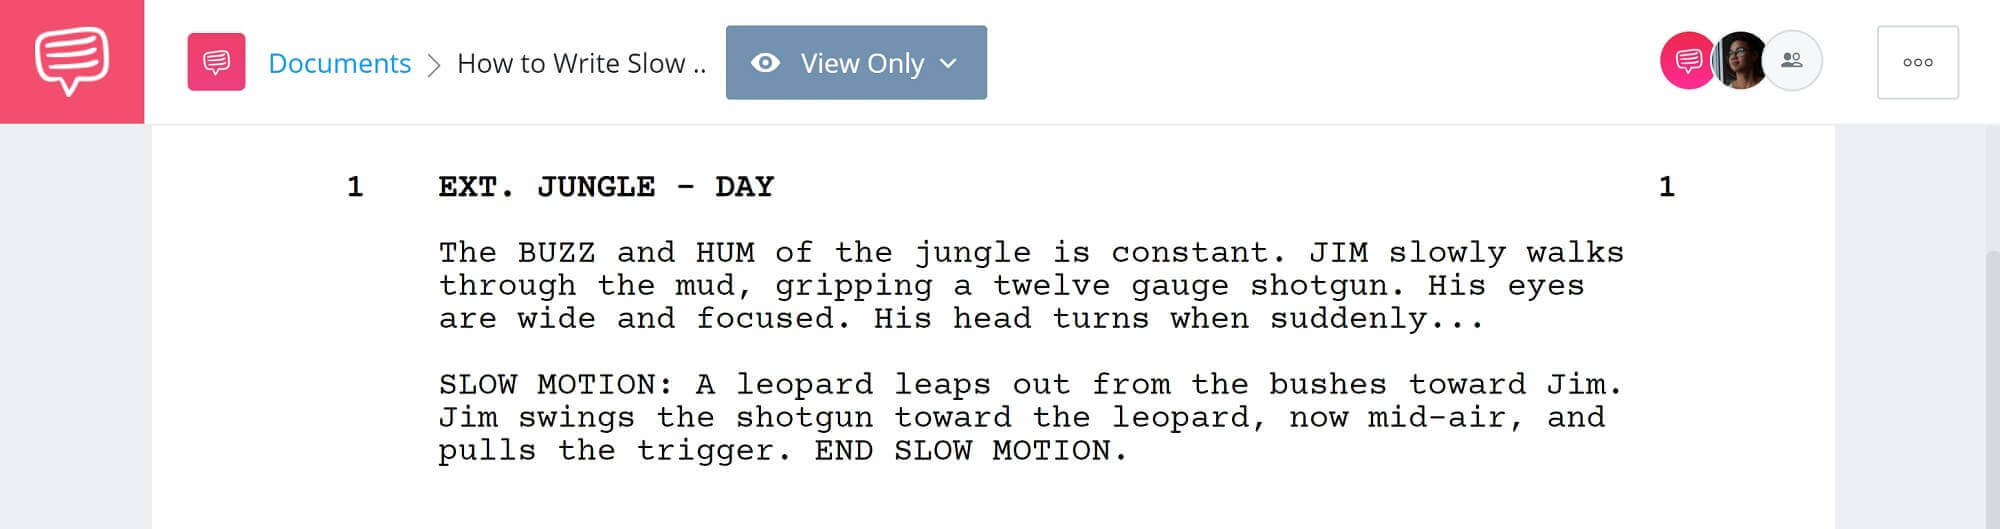 How to Write Slow Motion in a Script - Example